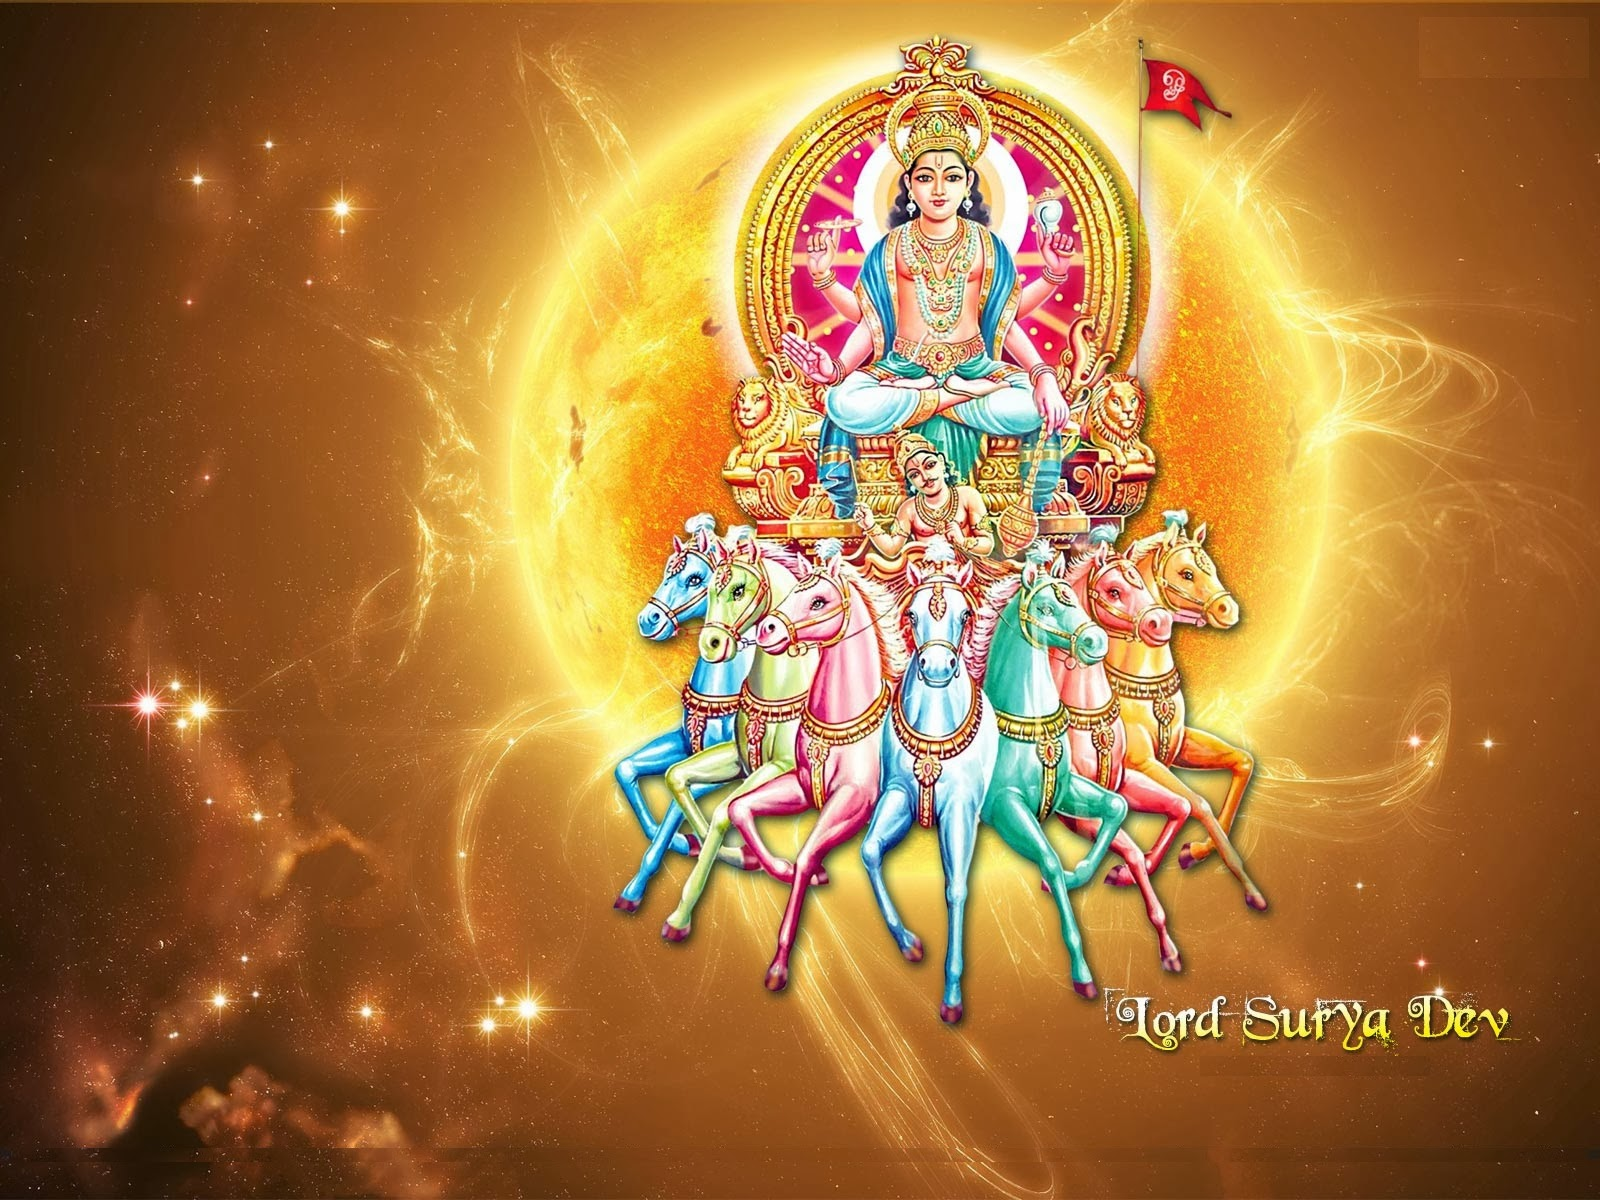 Lord Ganesha Wallpapers Hd For Windows 7 Lord Surya Dev Hd Adbhut Images Surya Bhagwan Wallpapers